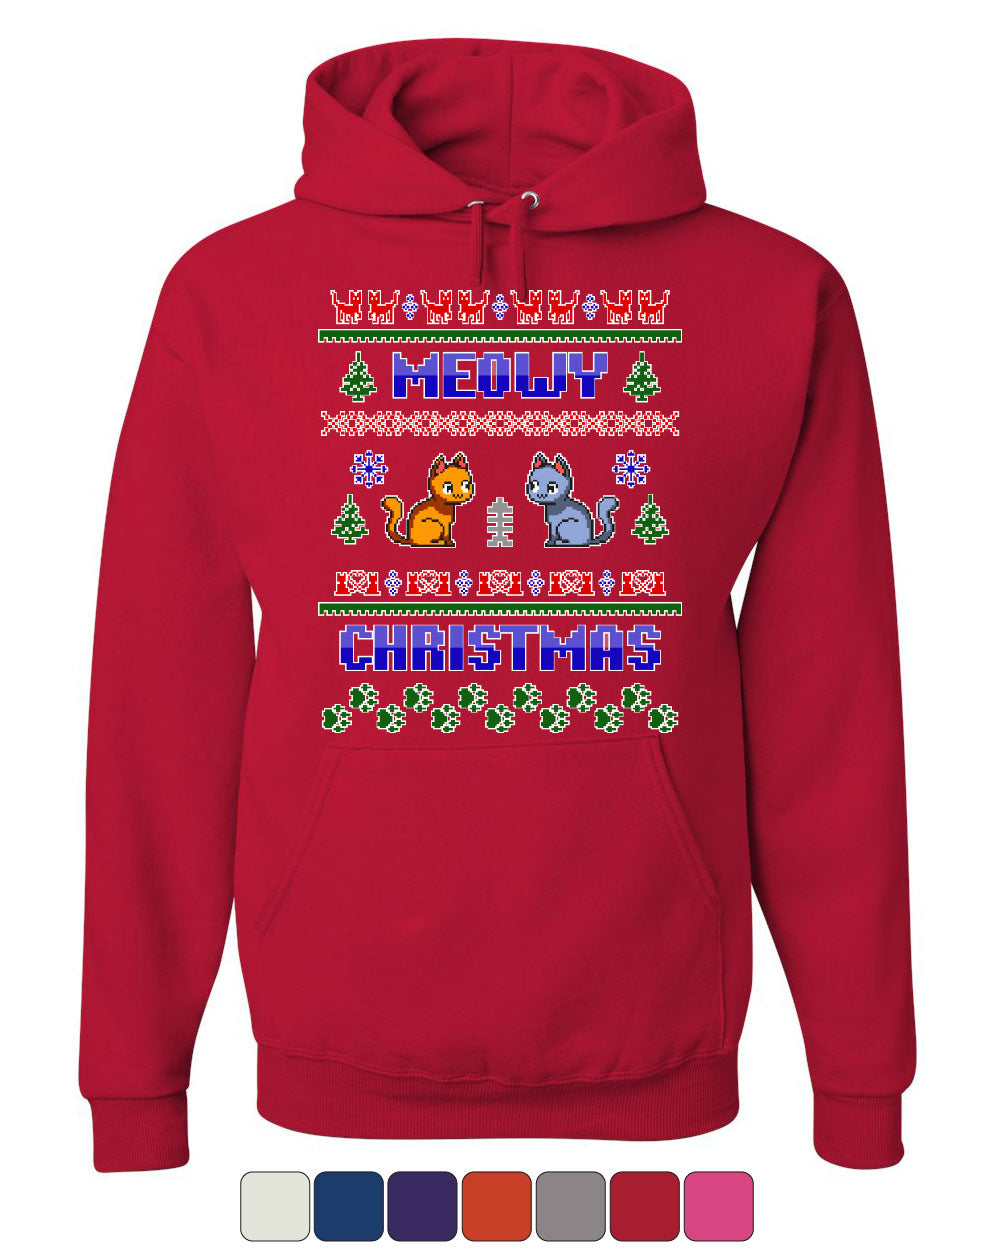 Meowy Christmas Sweater.Details About Meowy Christmas Ugly Sweater Hoodie Cat Kitten Purr Merry Xmas Sweatshirt